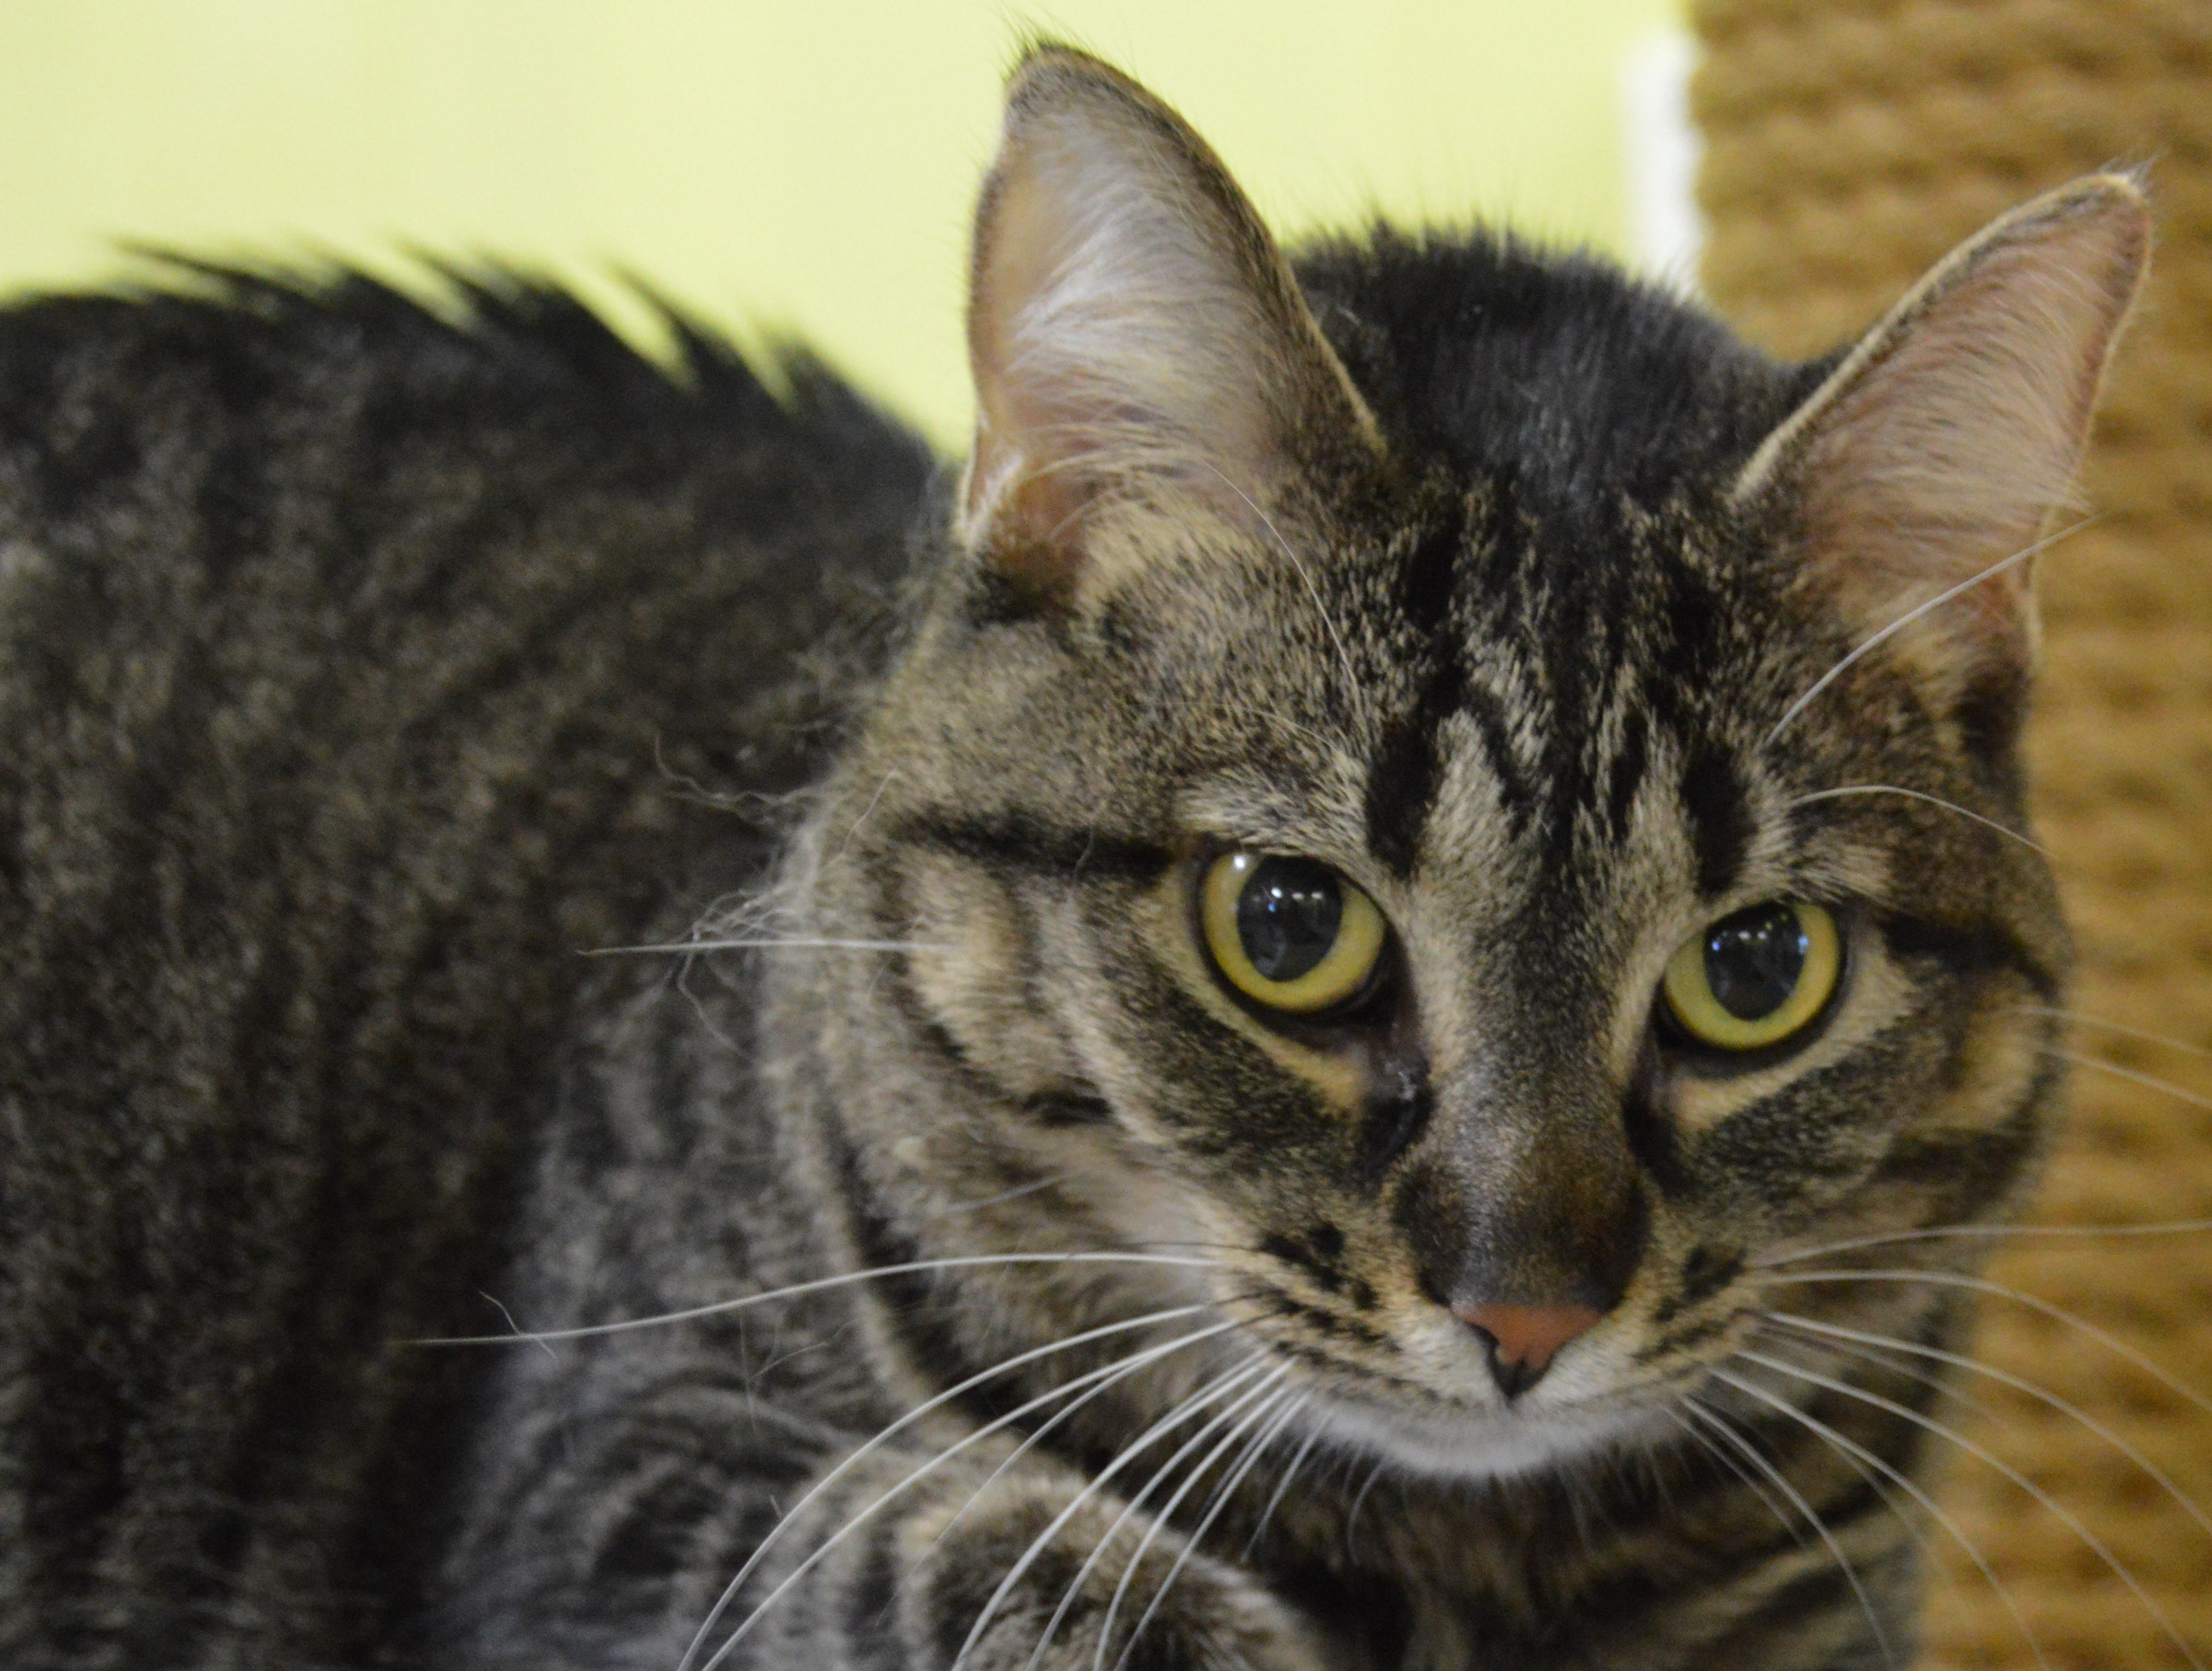 7-year-old Tiger Blossom likes other dogs, but would prefer to be your only cat. She is spayed and declawed.